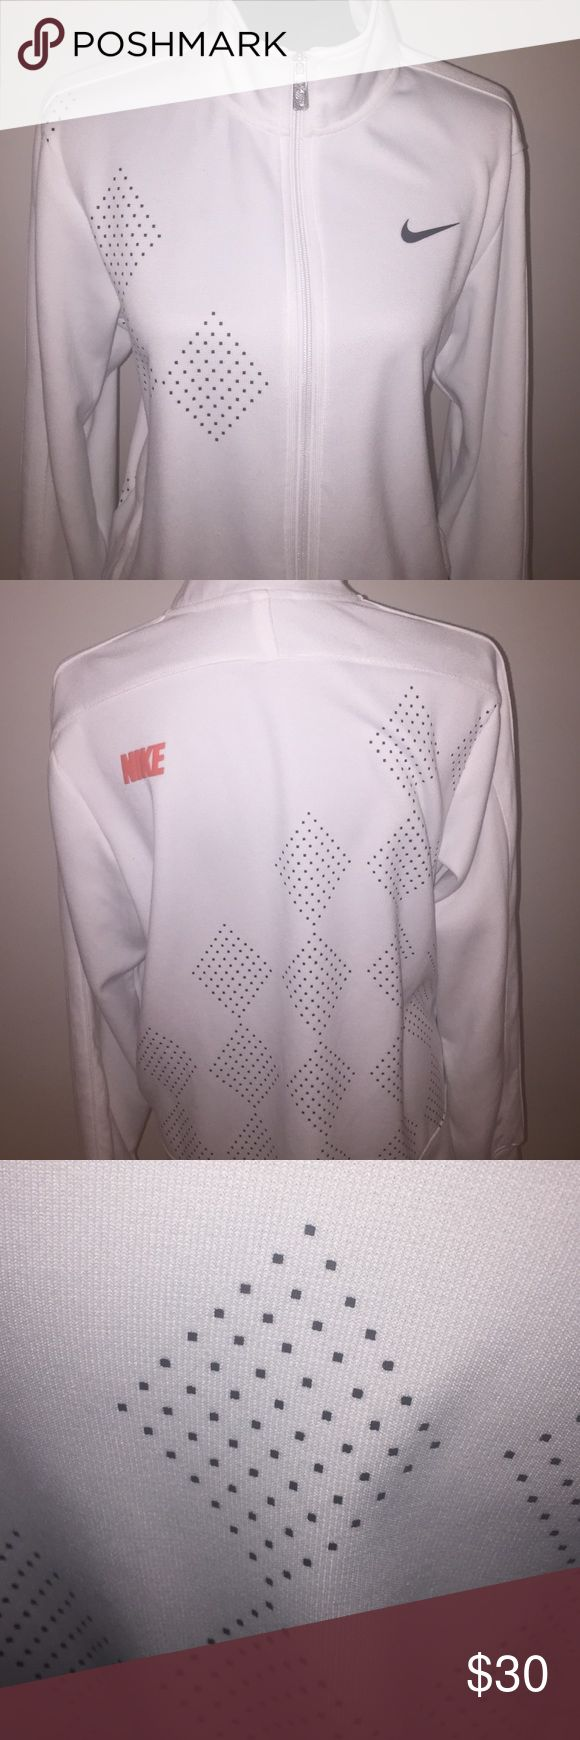 Nike zip up jacket Nike dri fit zip up jacket in white with gray diamond shape pattern on right from and the back. The orange Nike on the back is on the left upper near shoulder - has pockets- uni sex men's medium would fit women's large- in excellent condition Nike Jackets & Coats Performance Jackets